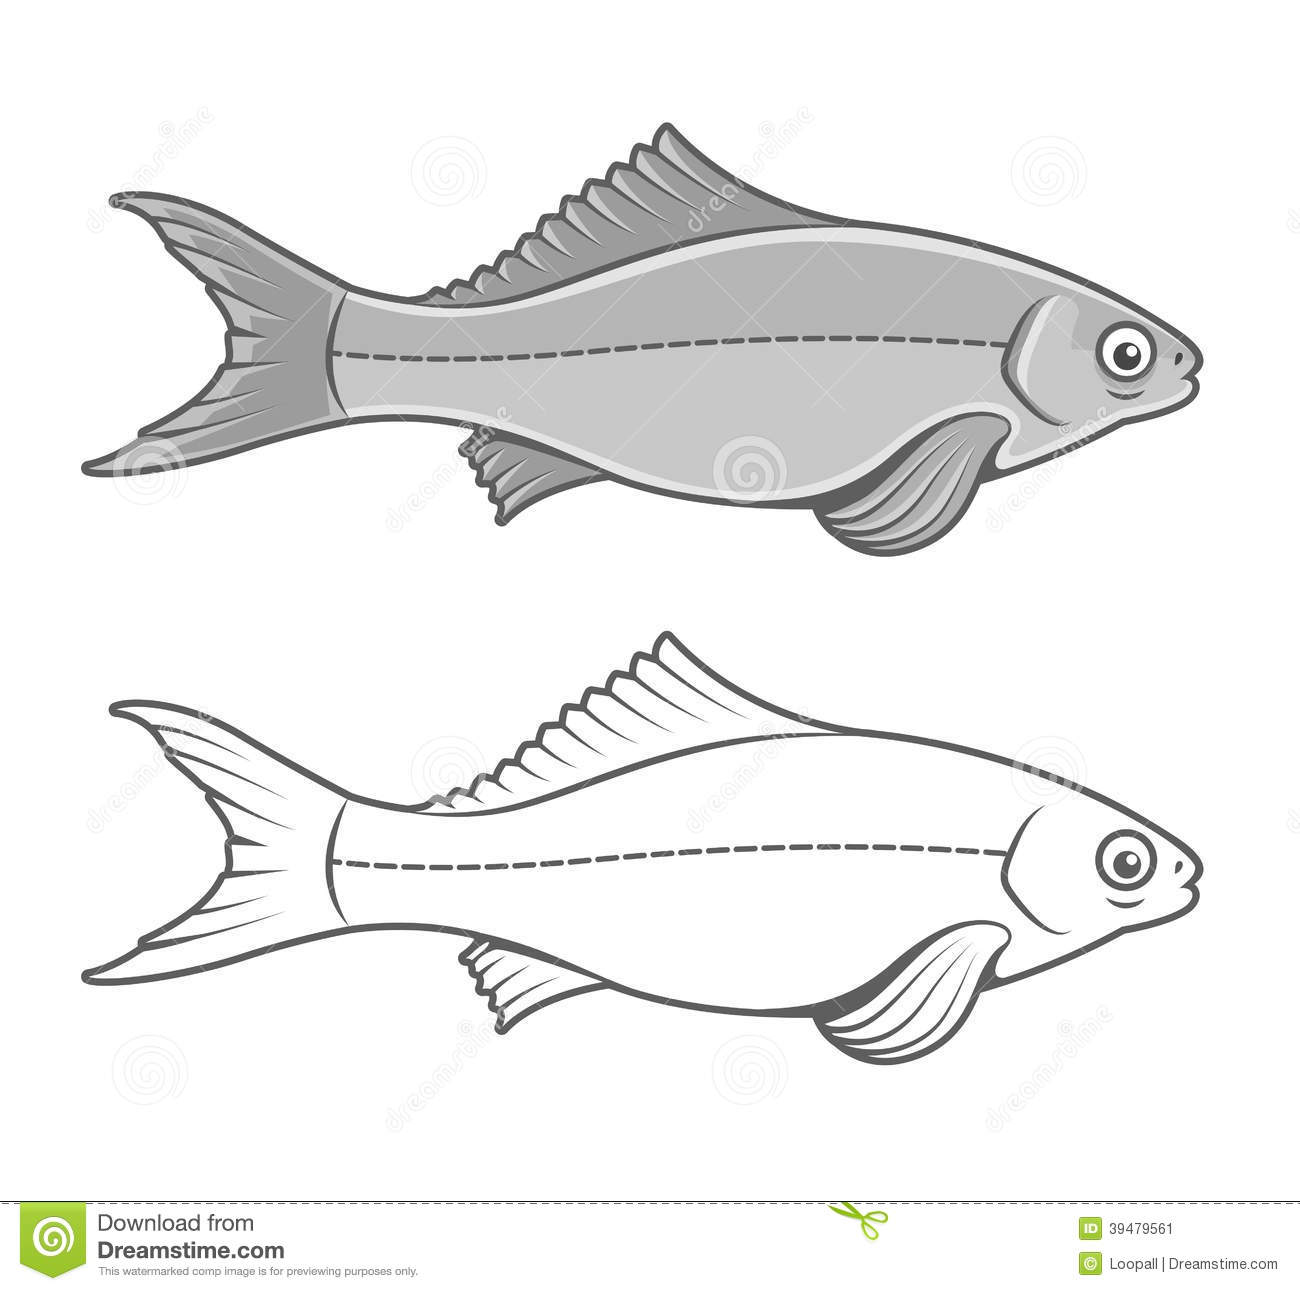 Contour Line Drawing Animal : Silhouette of fish contour drawing stock illustration